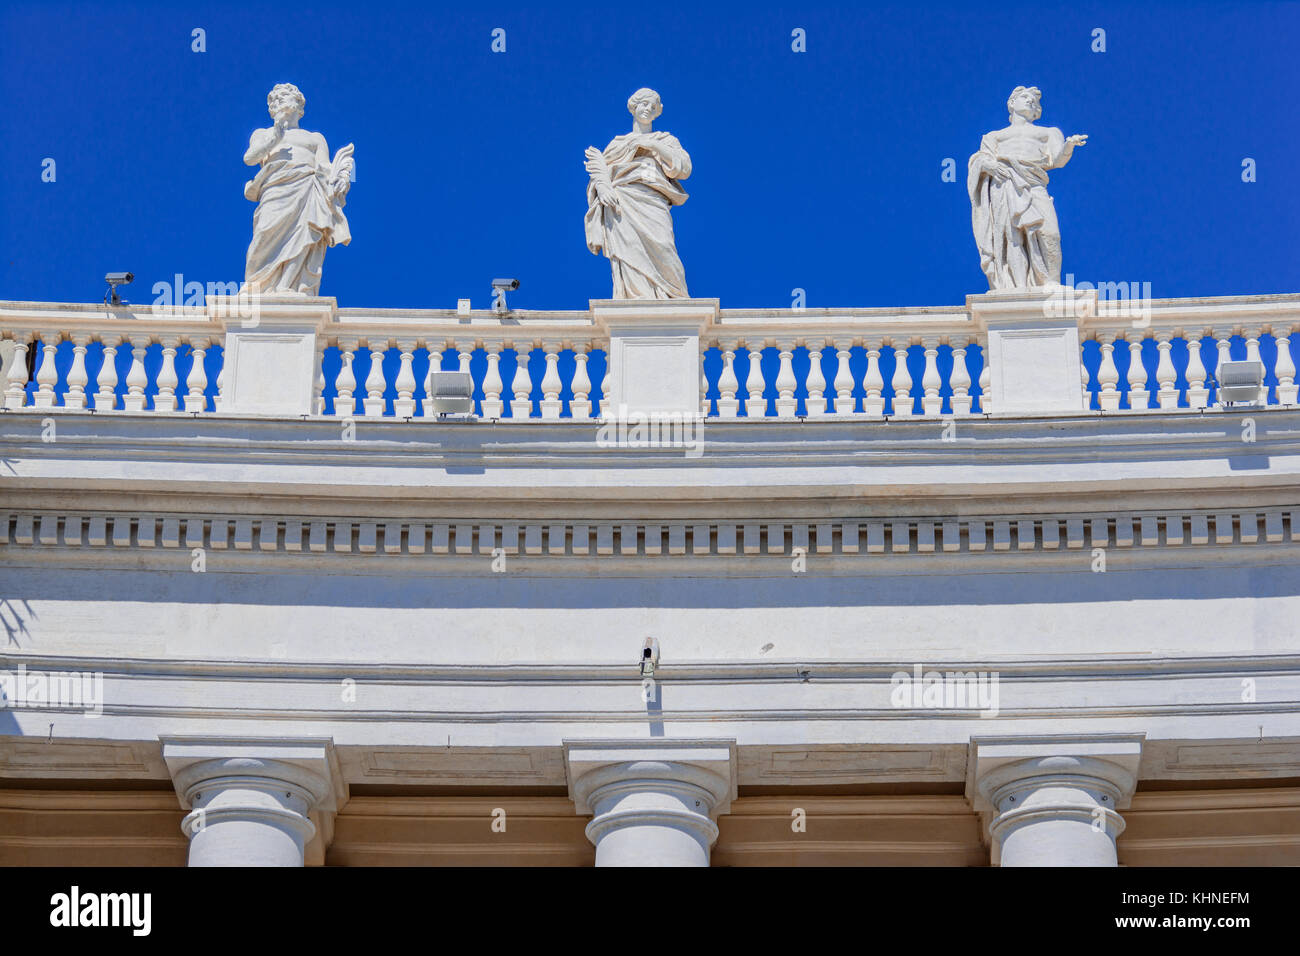 Architectural detail in Saint Peter Square in Vatican, Rome,Italy - Stock Image